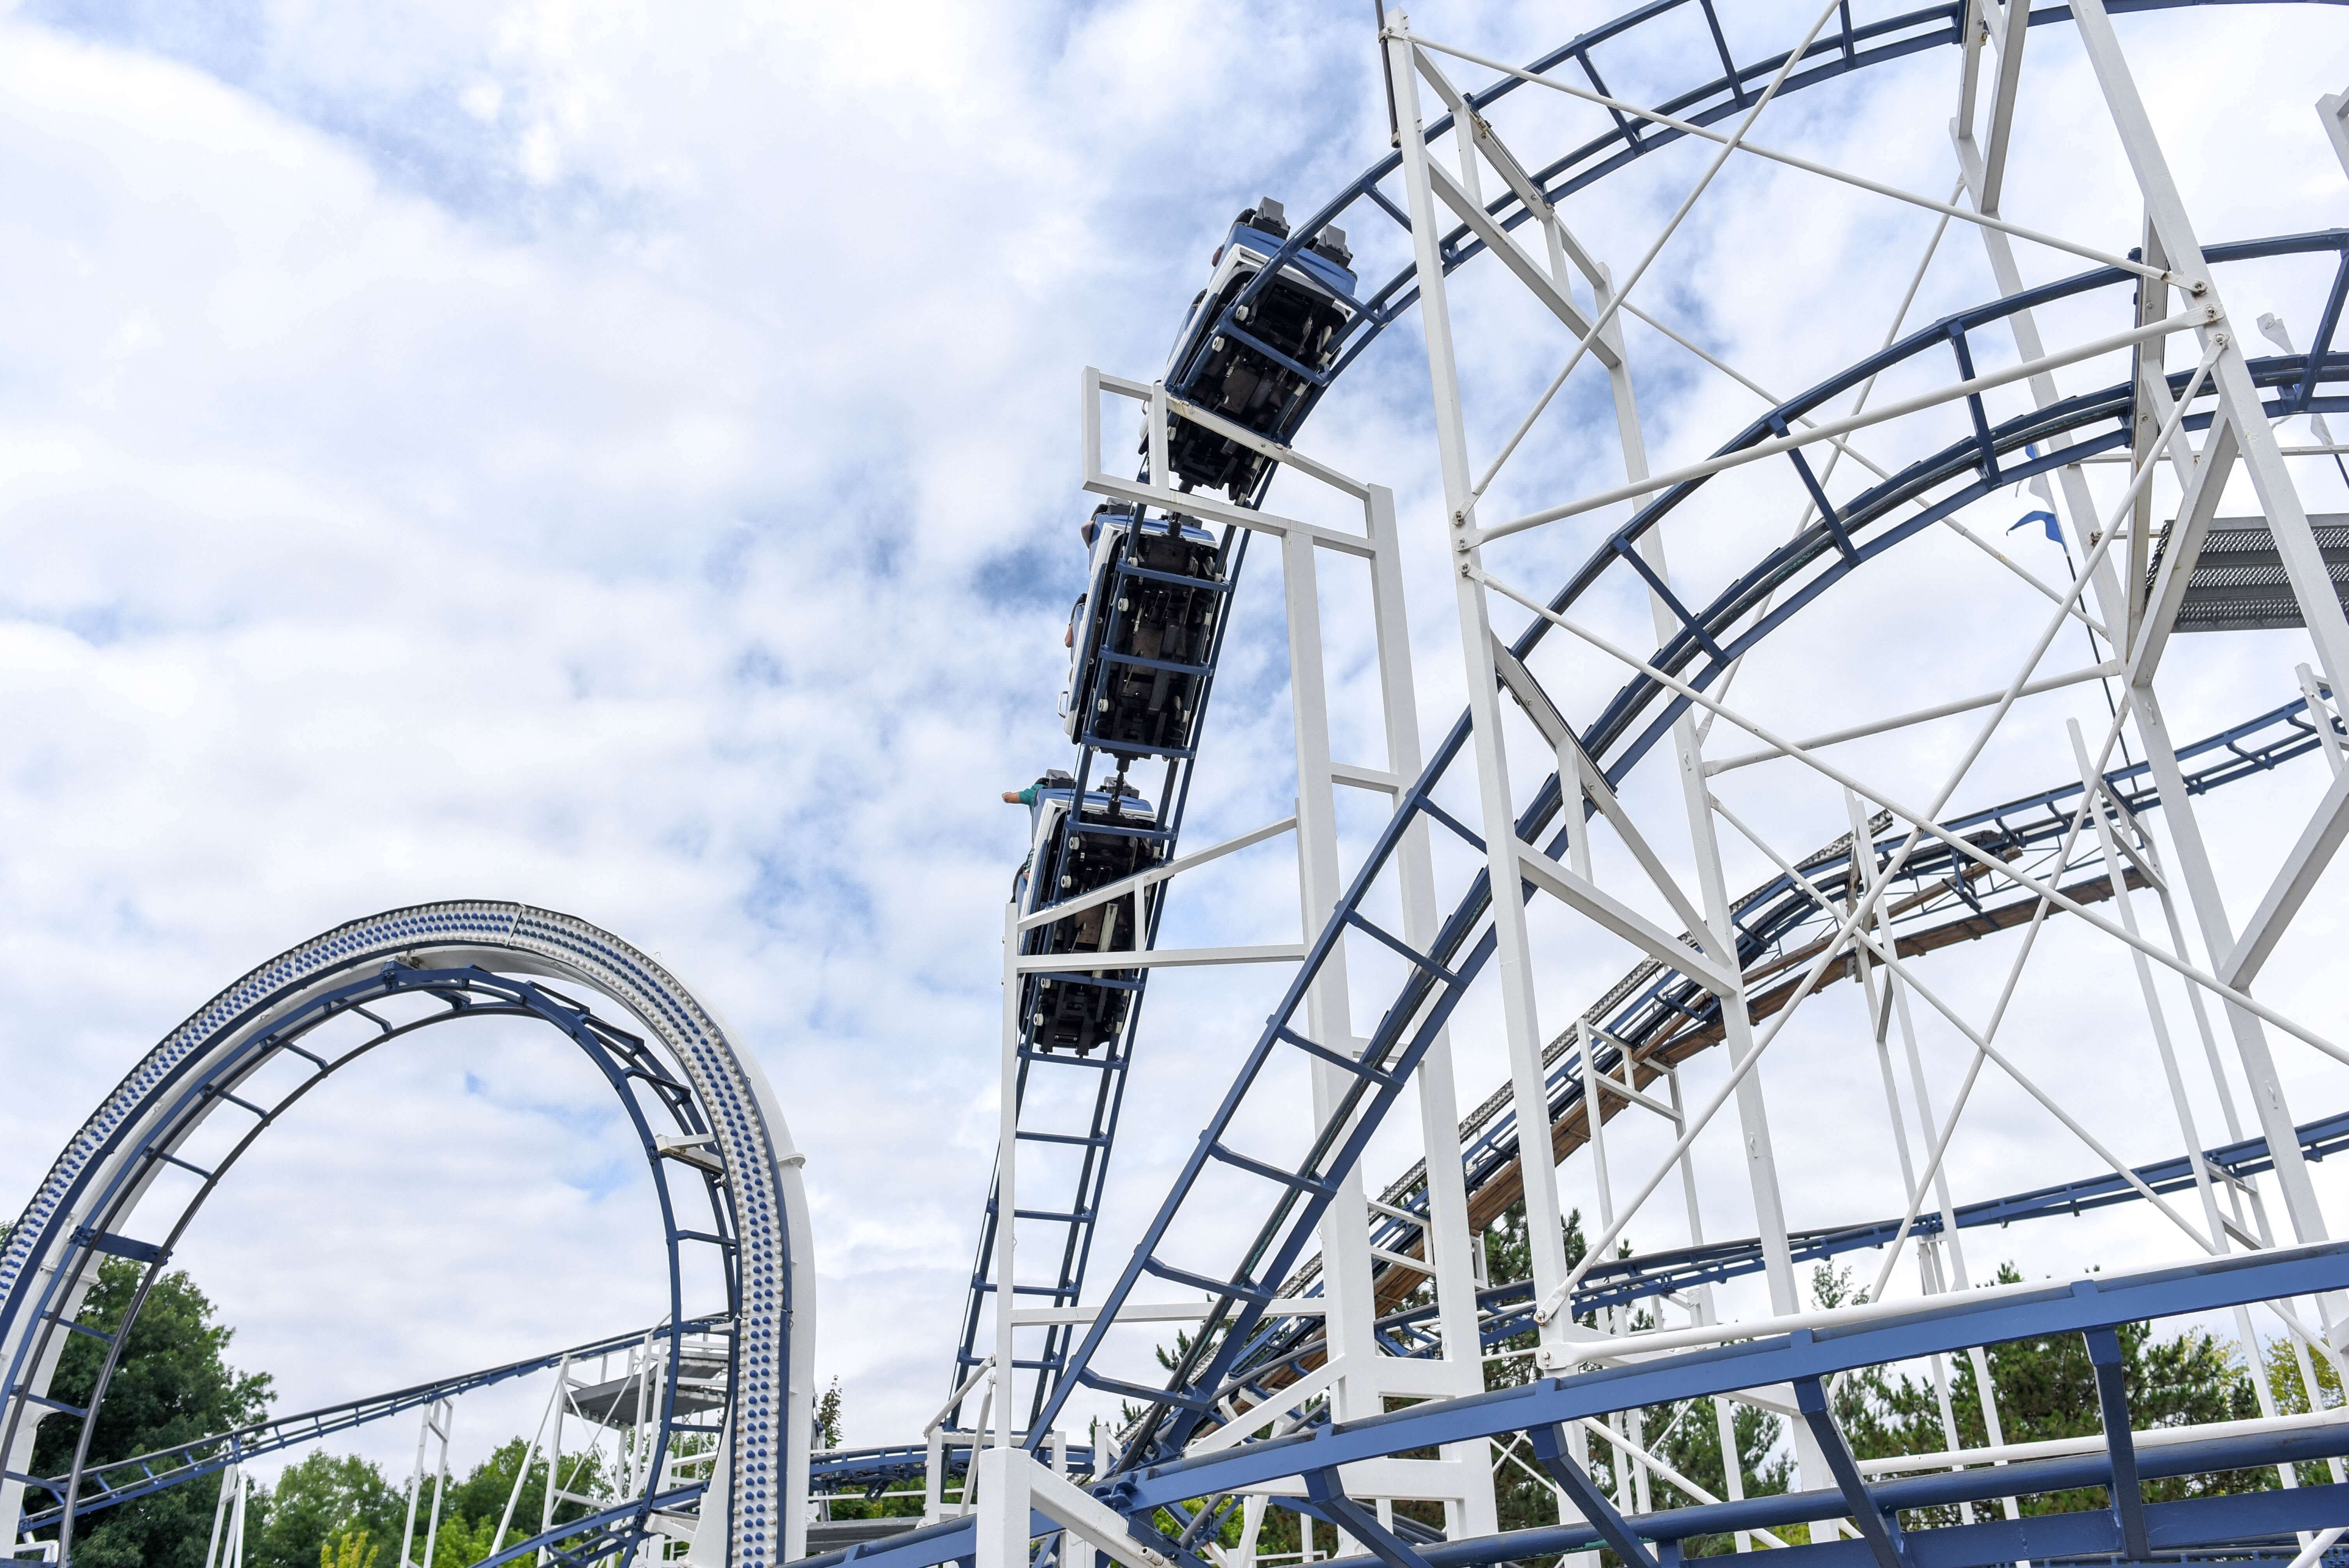 roller coster, amusment park, activities for last days of summer